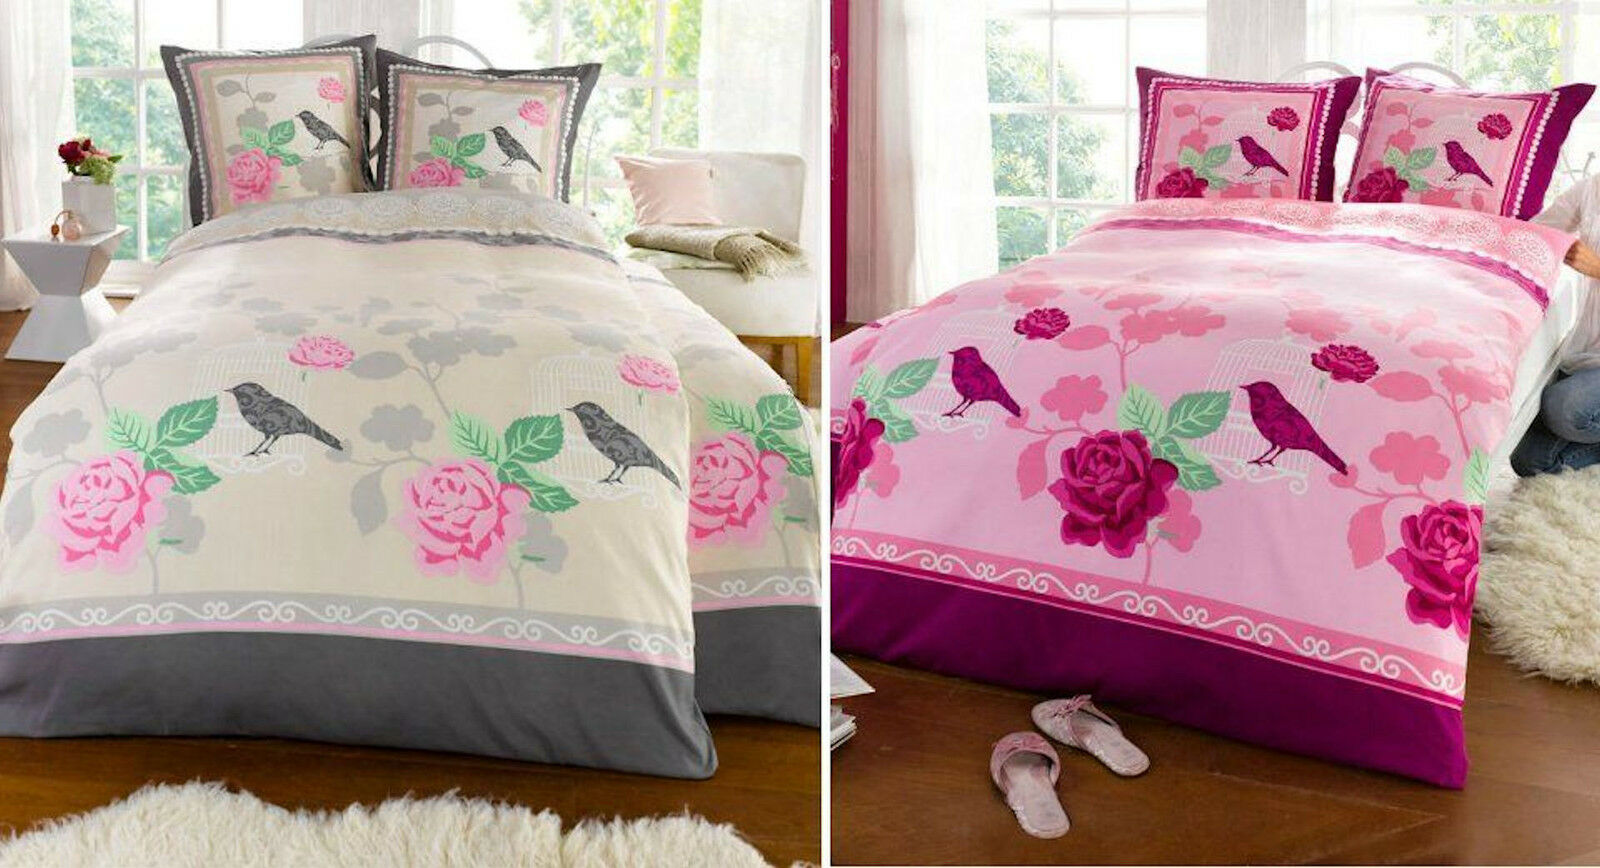 Bed Linens Sets 2 Tlg Bettwäsche Garnitur